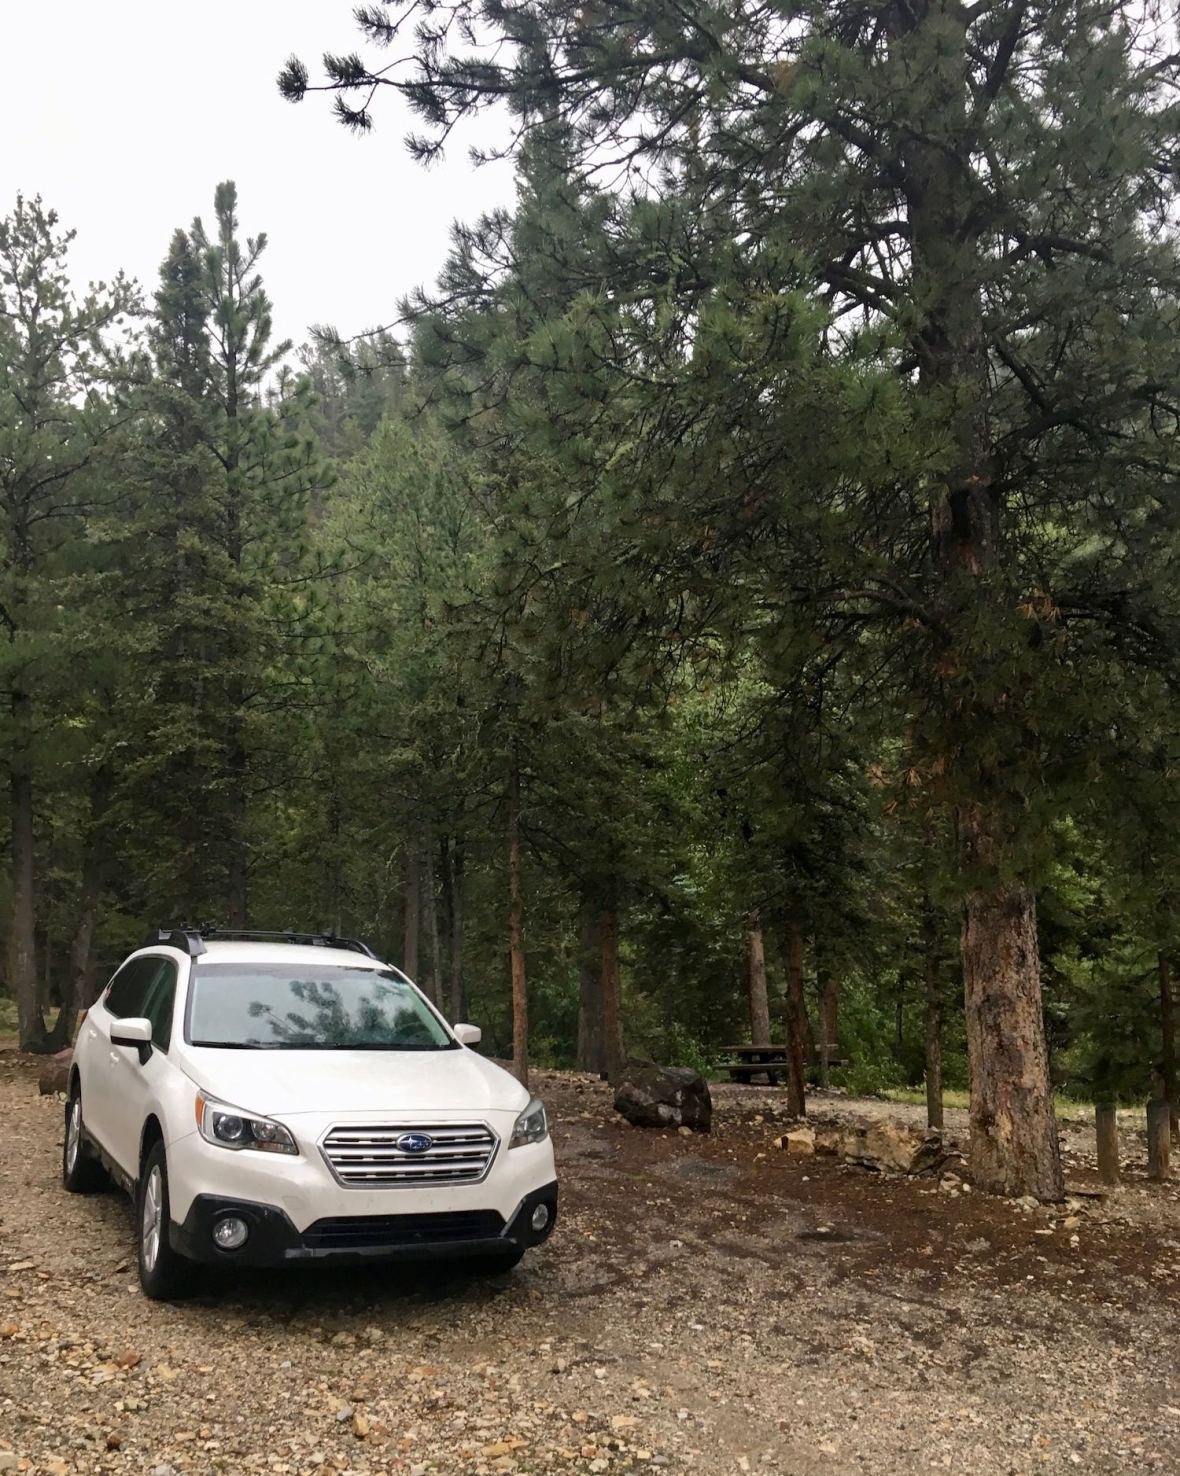 Carson National Forest Campground near Red River, New Mexico